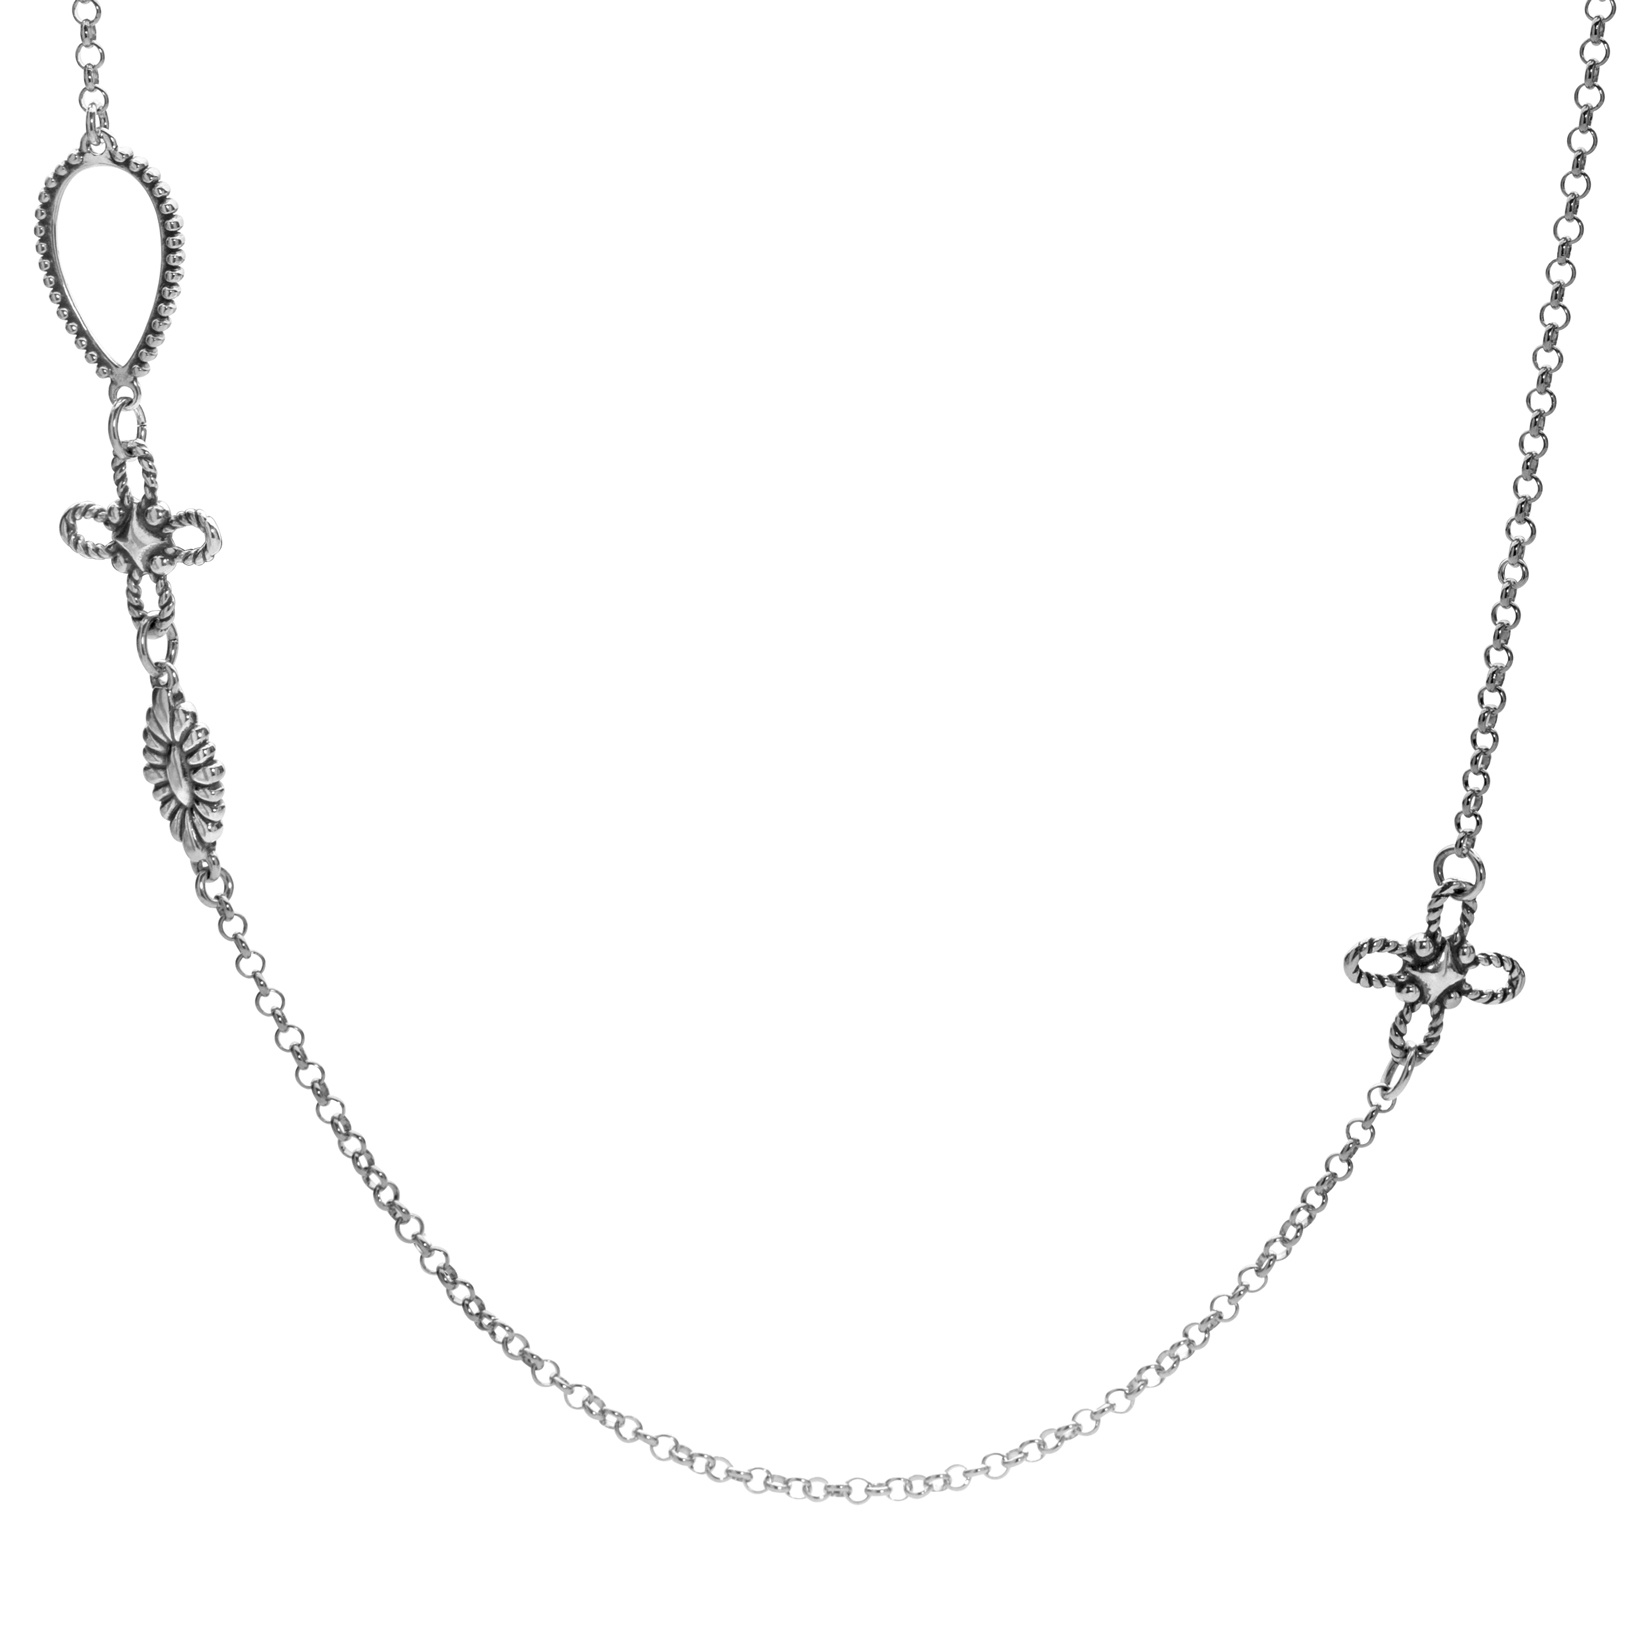 Sterling Silver Station Necklace 32 Inch